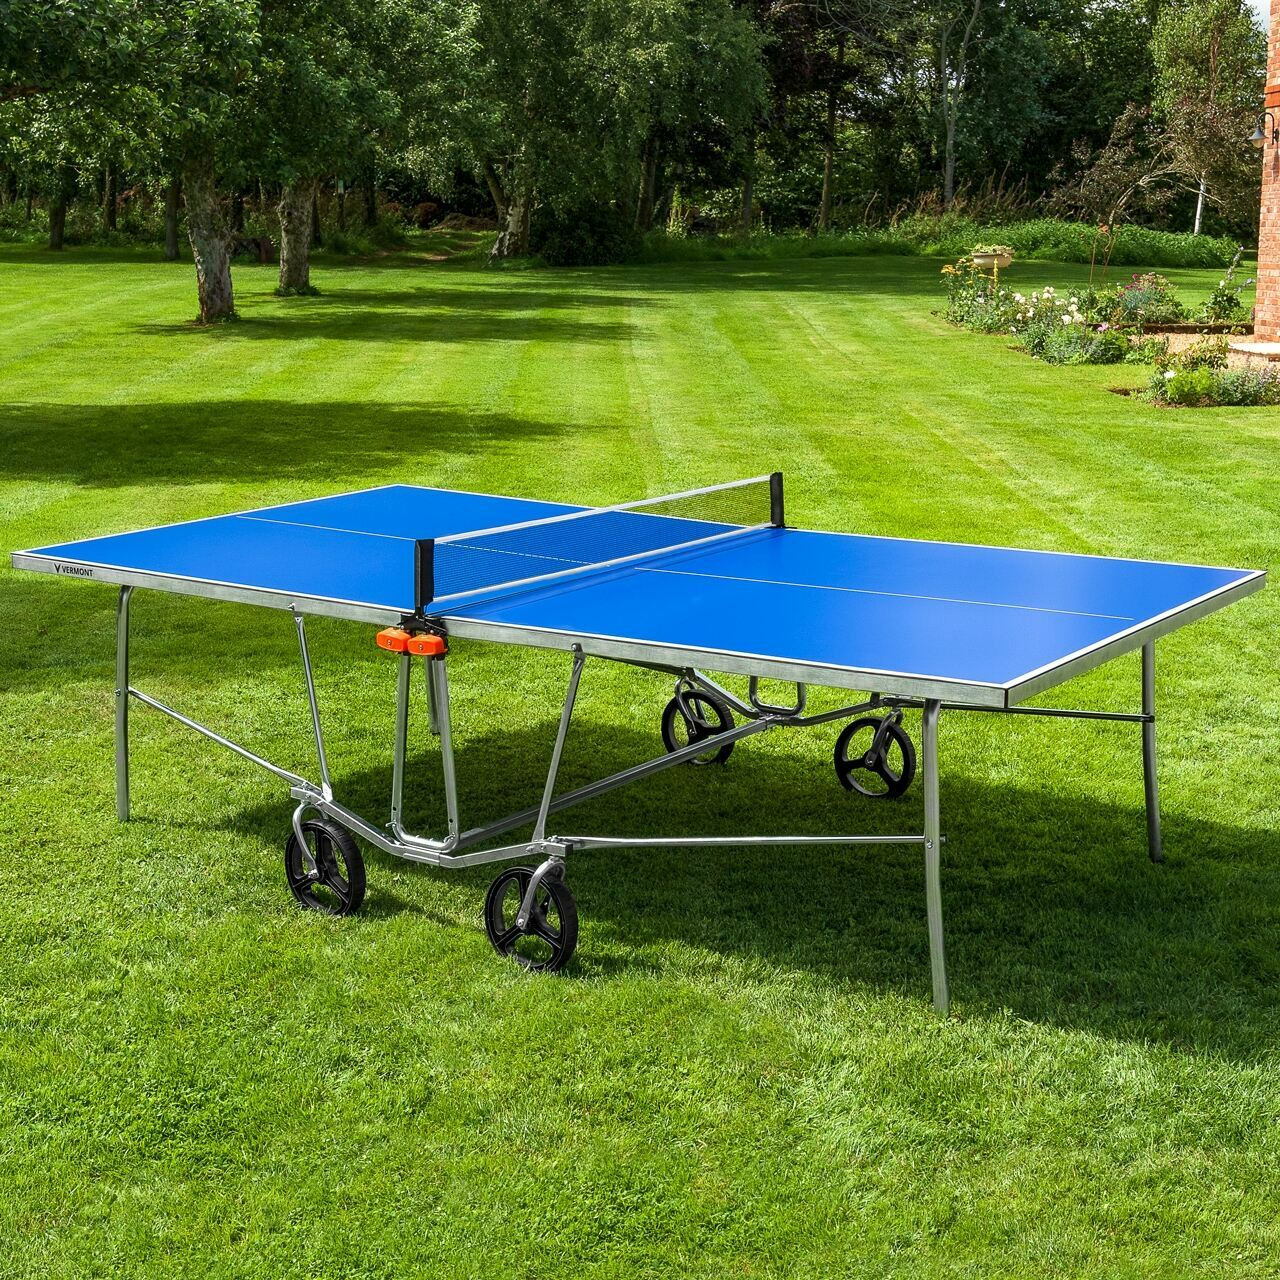 Vermont TS100 Outdoor Table Tennis Table